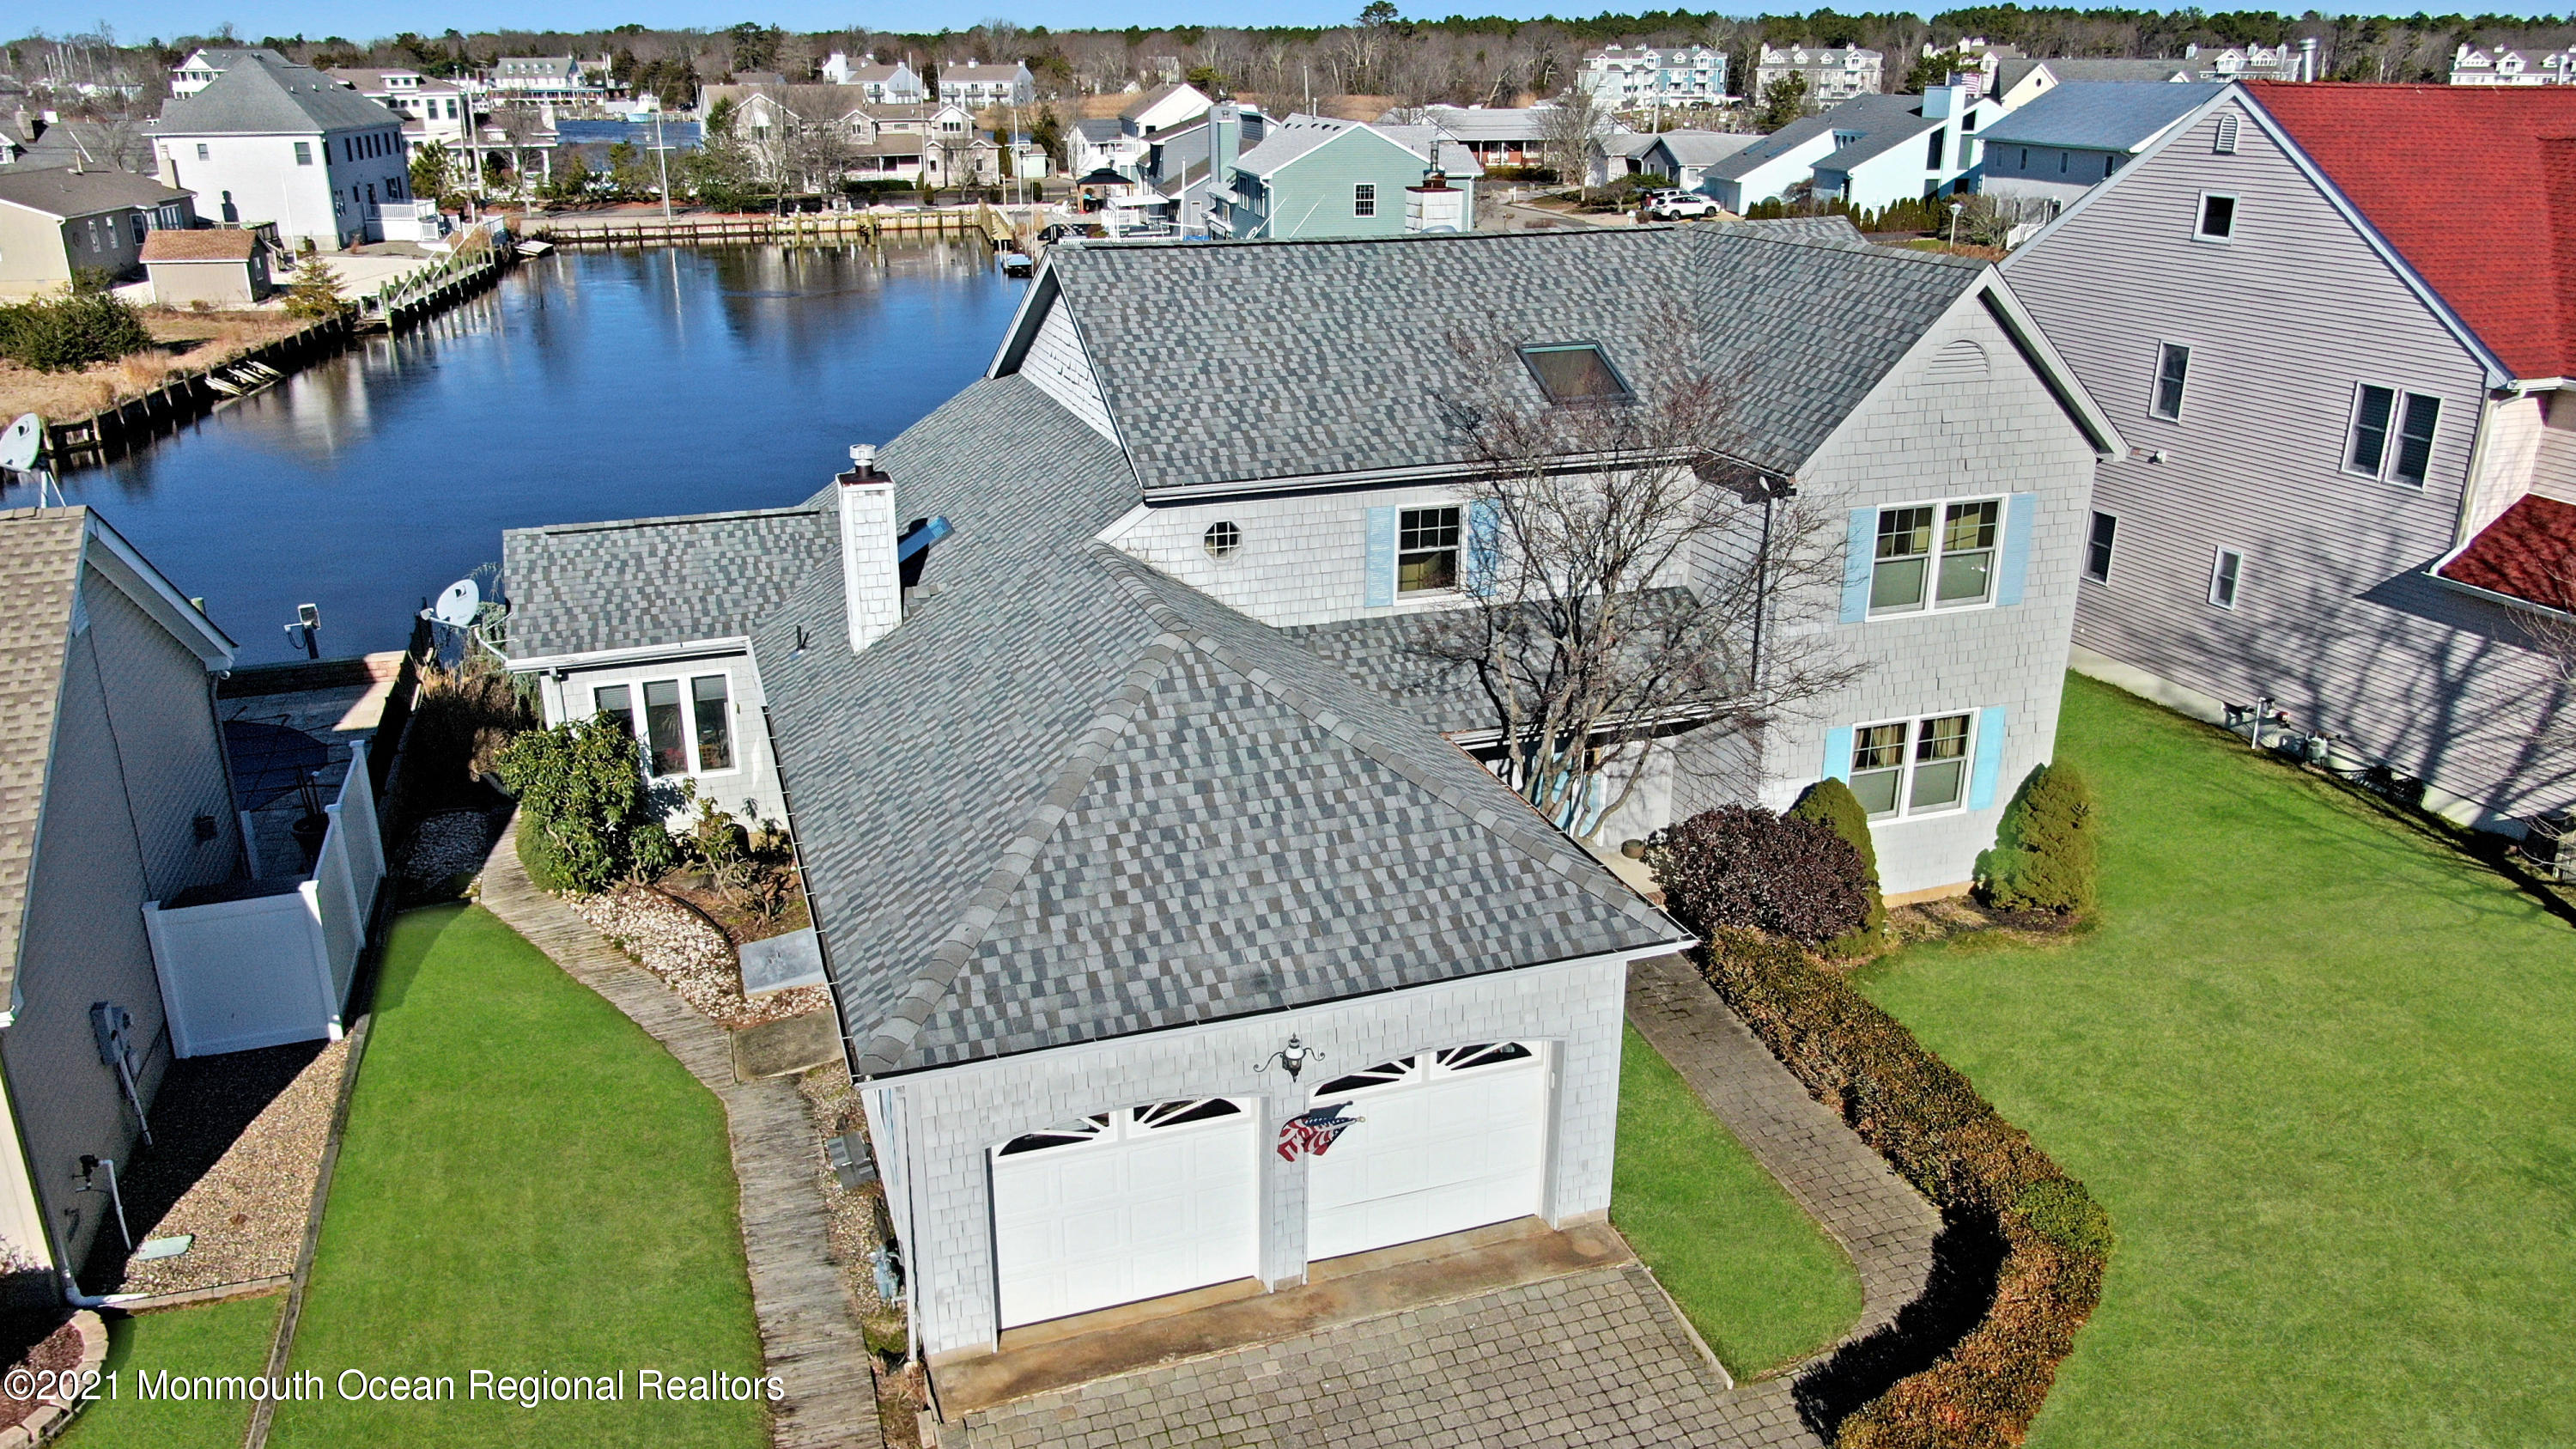 721 Fairview Lane, Forked River, New Jersey 08731, 3 Bedrooms Bedrooms, ,3 BathroomsBathrooms,Single Family,For Sale,721 Fairview Lane,2,22100973